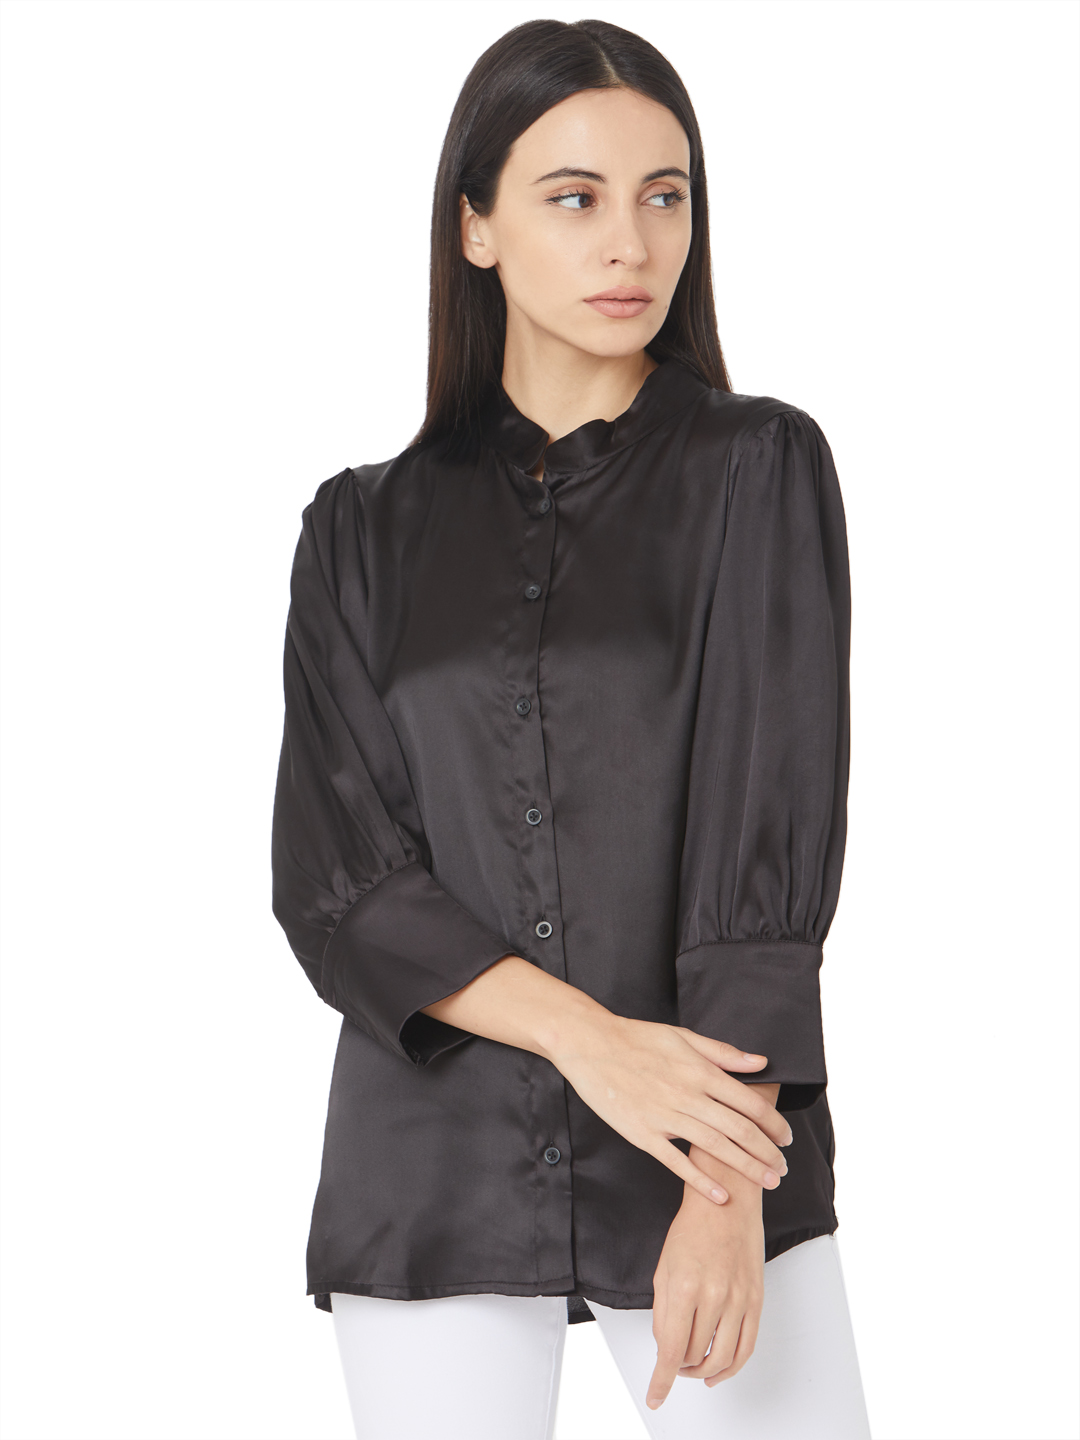 Smarty Pants | Silk satin black color puff sleeves button down shirt